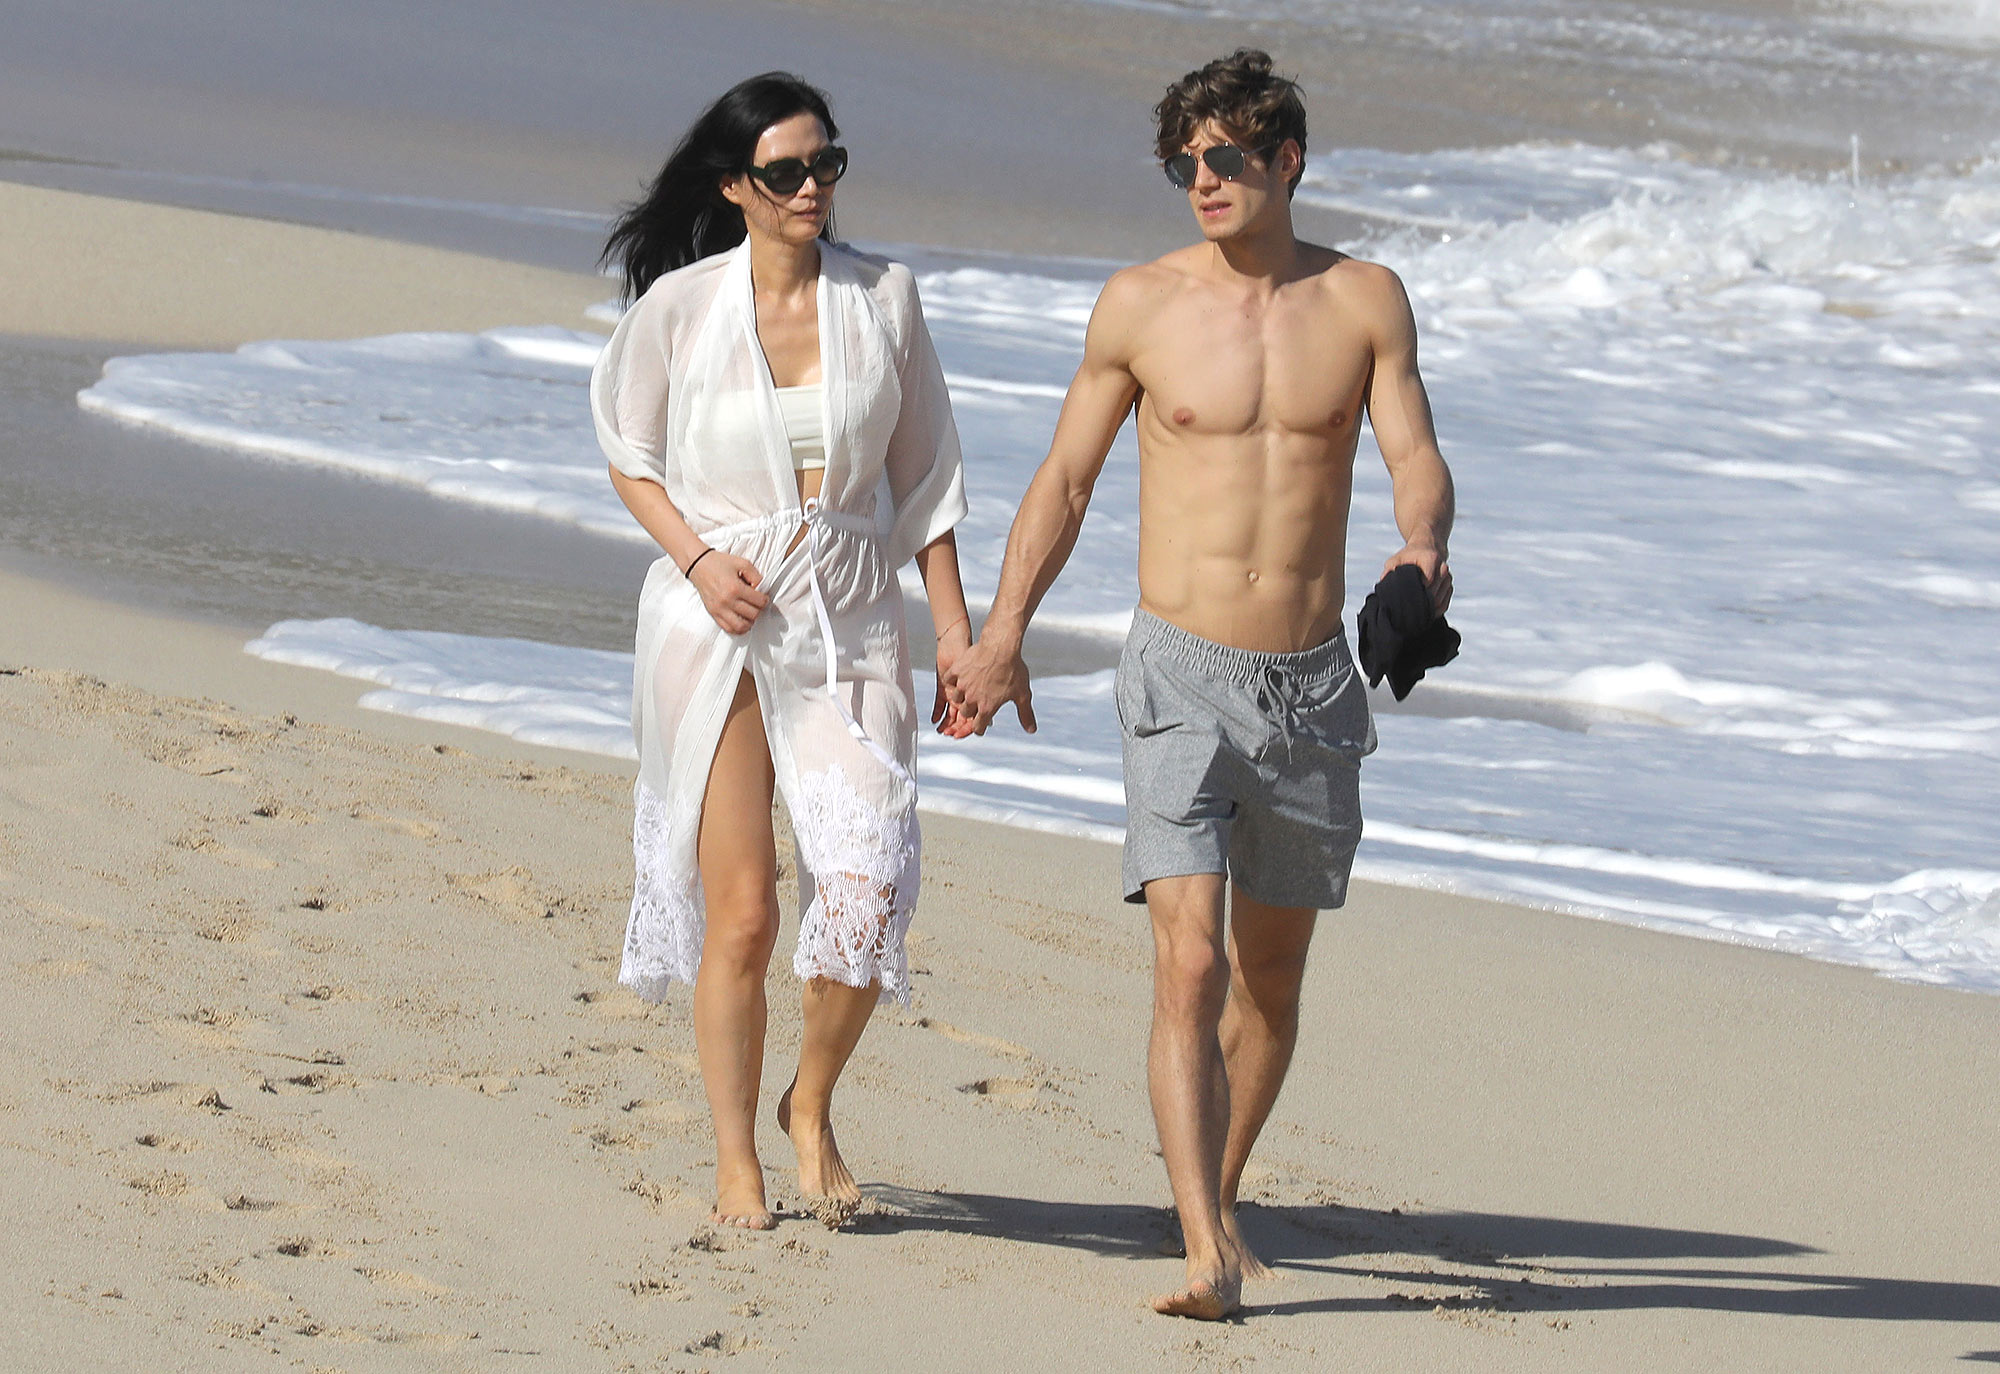 EXCLUSIVE: Rupert Murdoch's famed ex-wife Wendi Deng shows off new toyboy romance during St Barts vacation.